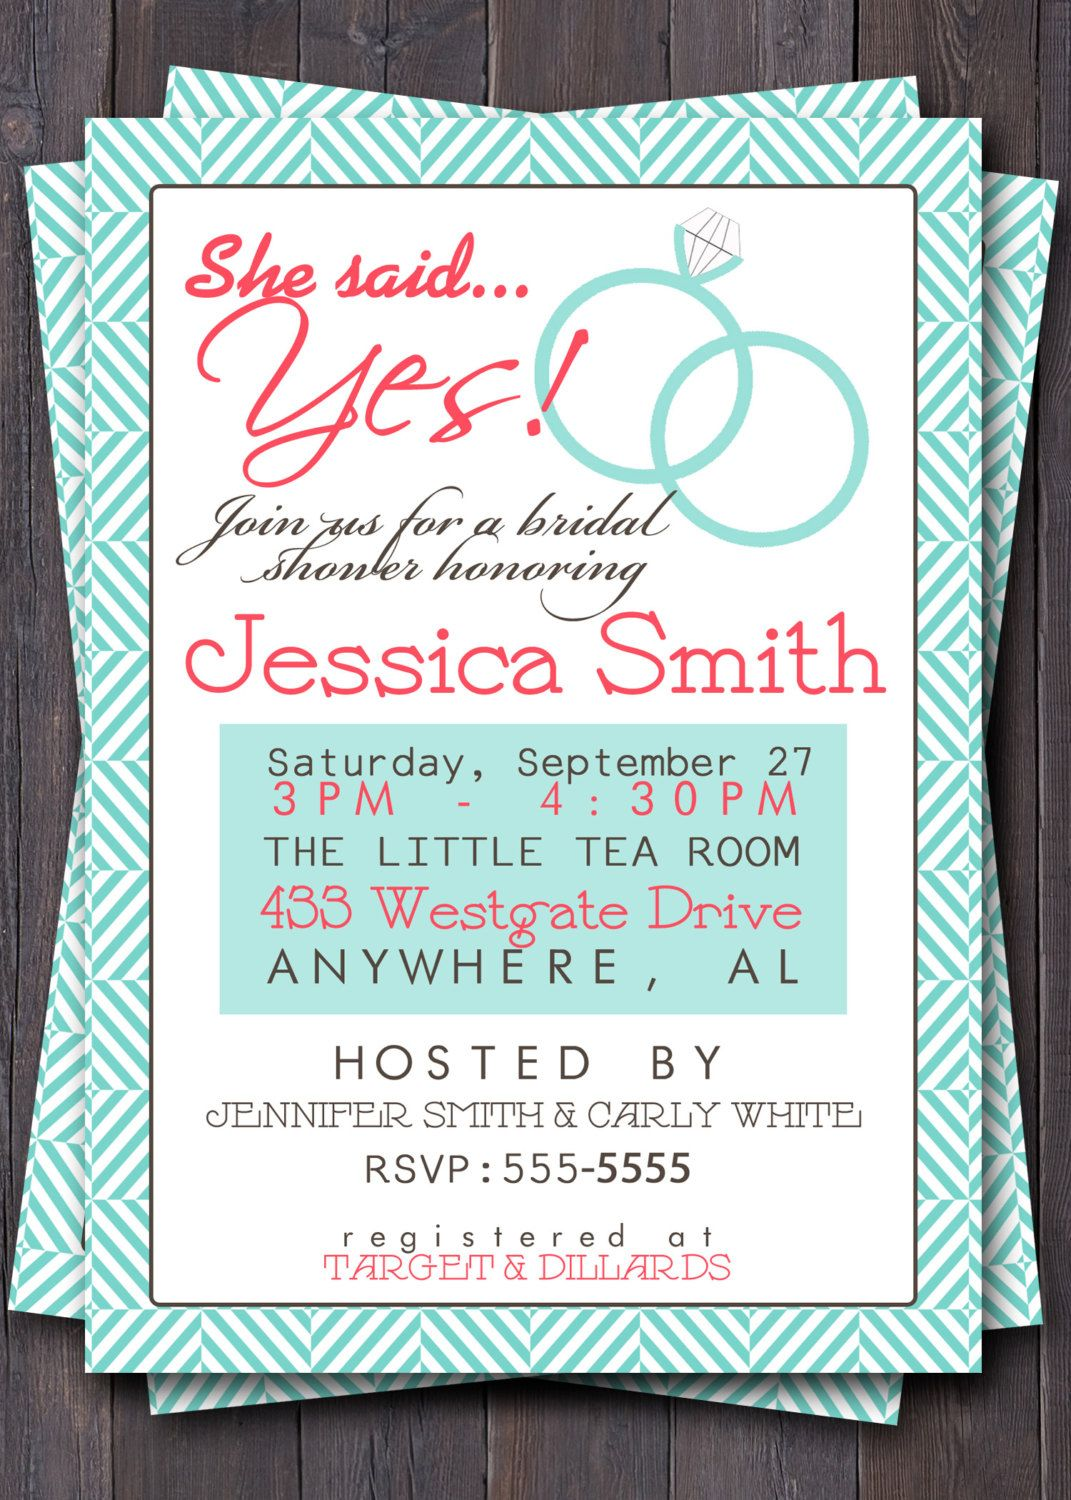 Brunch weddings wedding shower invitation invite bridal for Bridal shower invitation designs